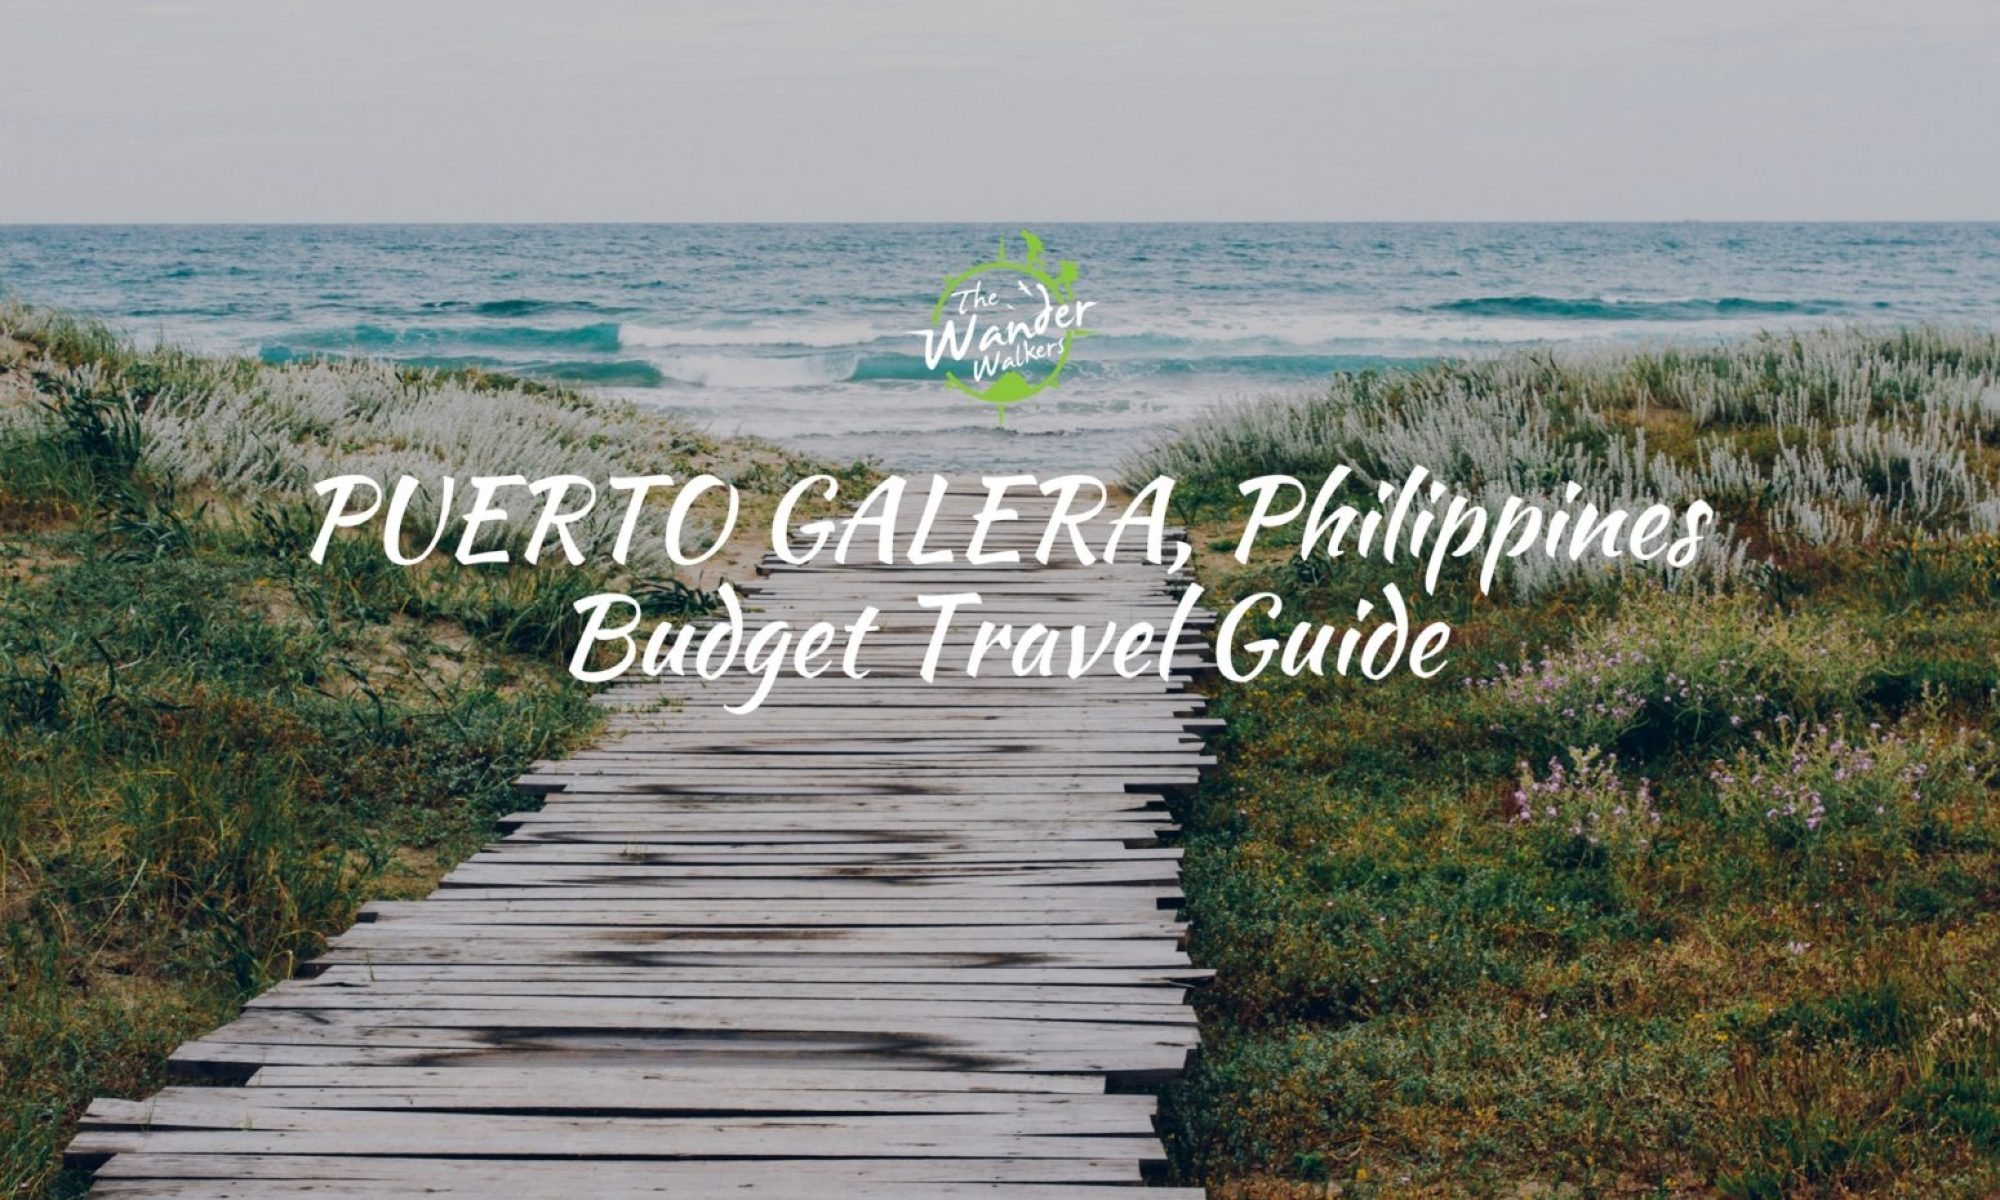 Puerto Galera budget Guide